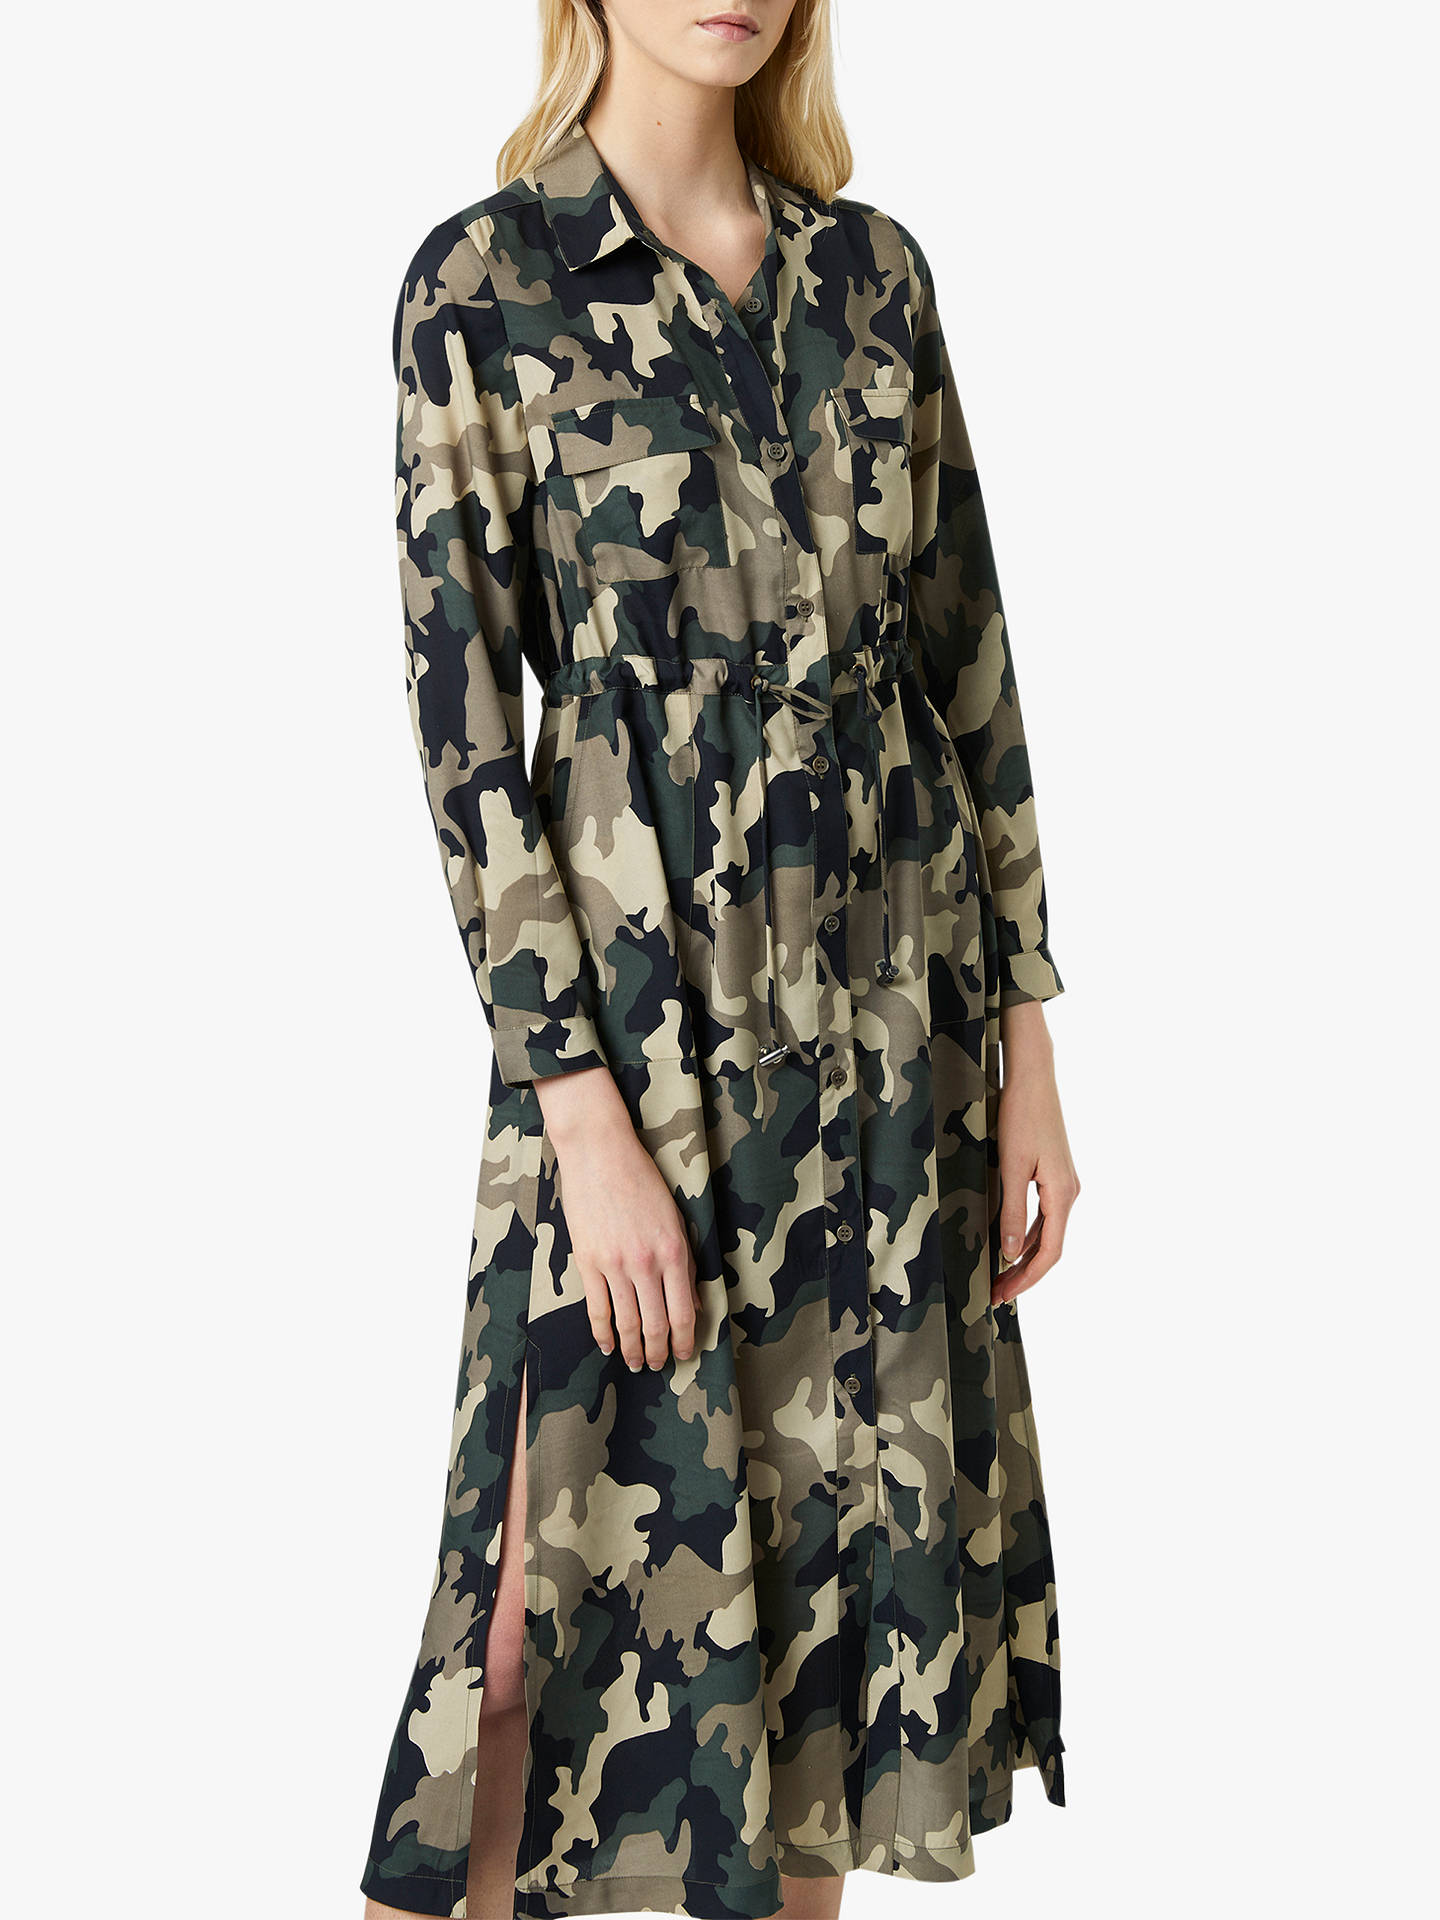 4e265f4ac94 ... Buy French Connection Camo Midi Shirt Dress, Khaki, 16 Online at  johnlewis.com